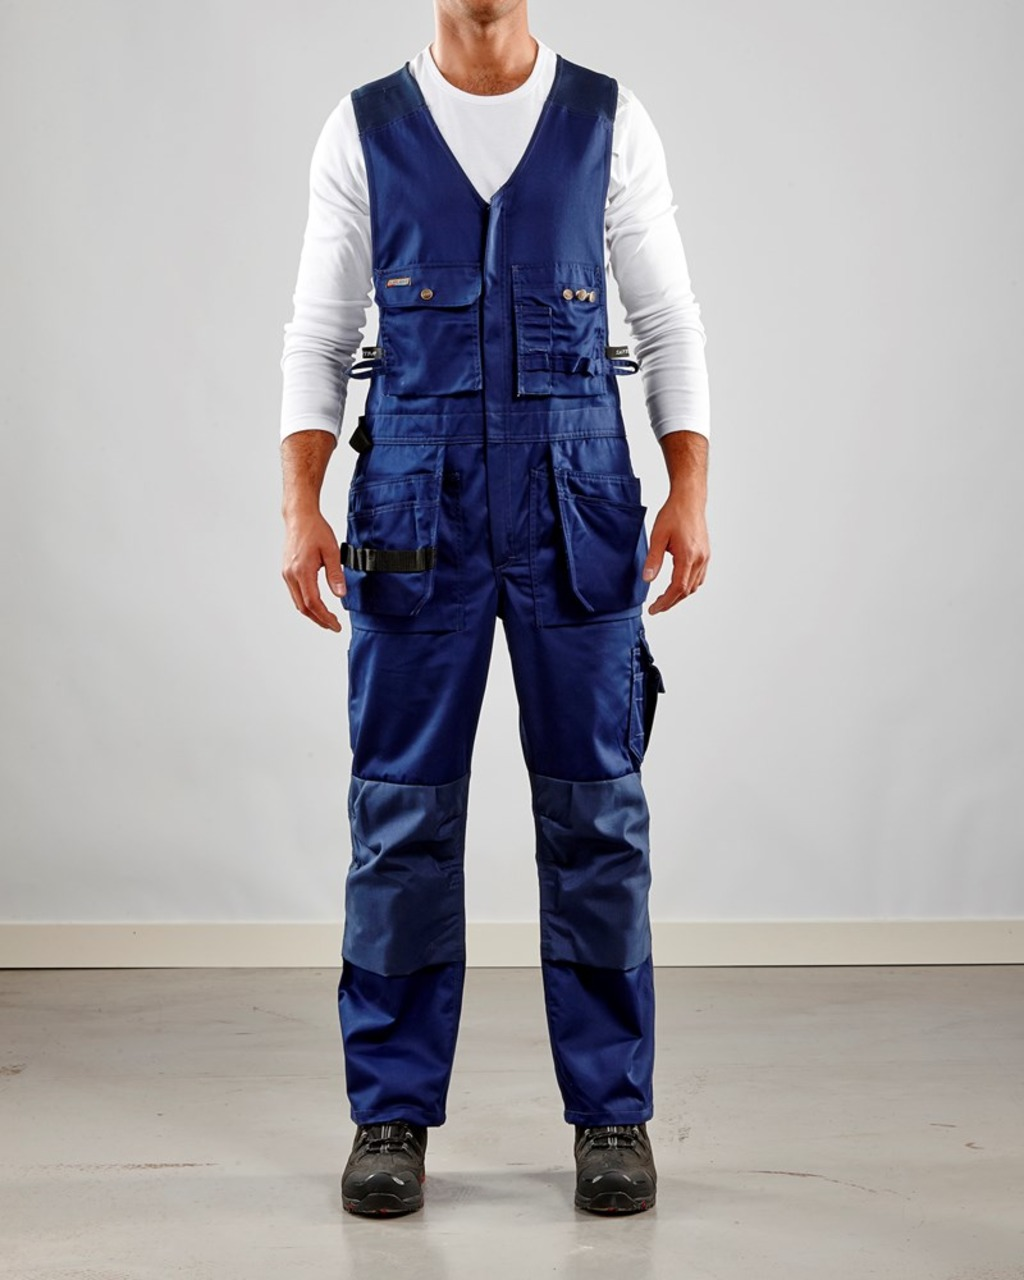 26501860 Am. Overall